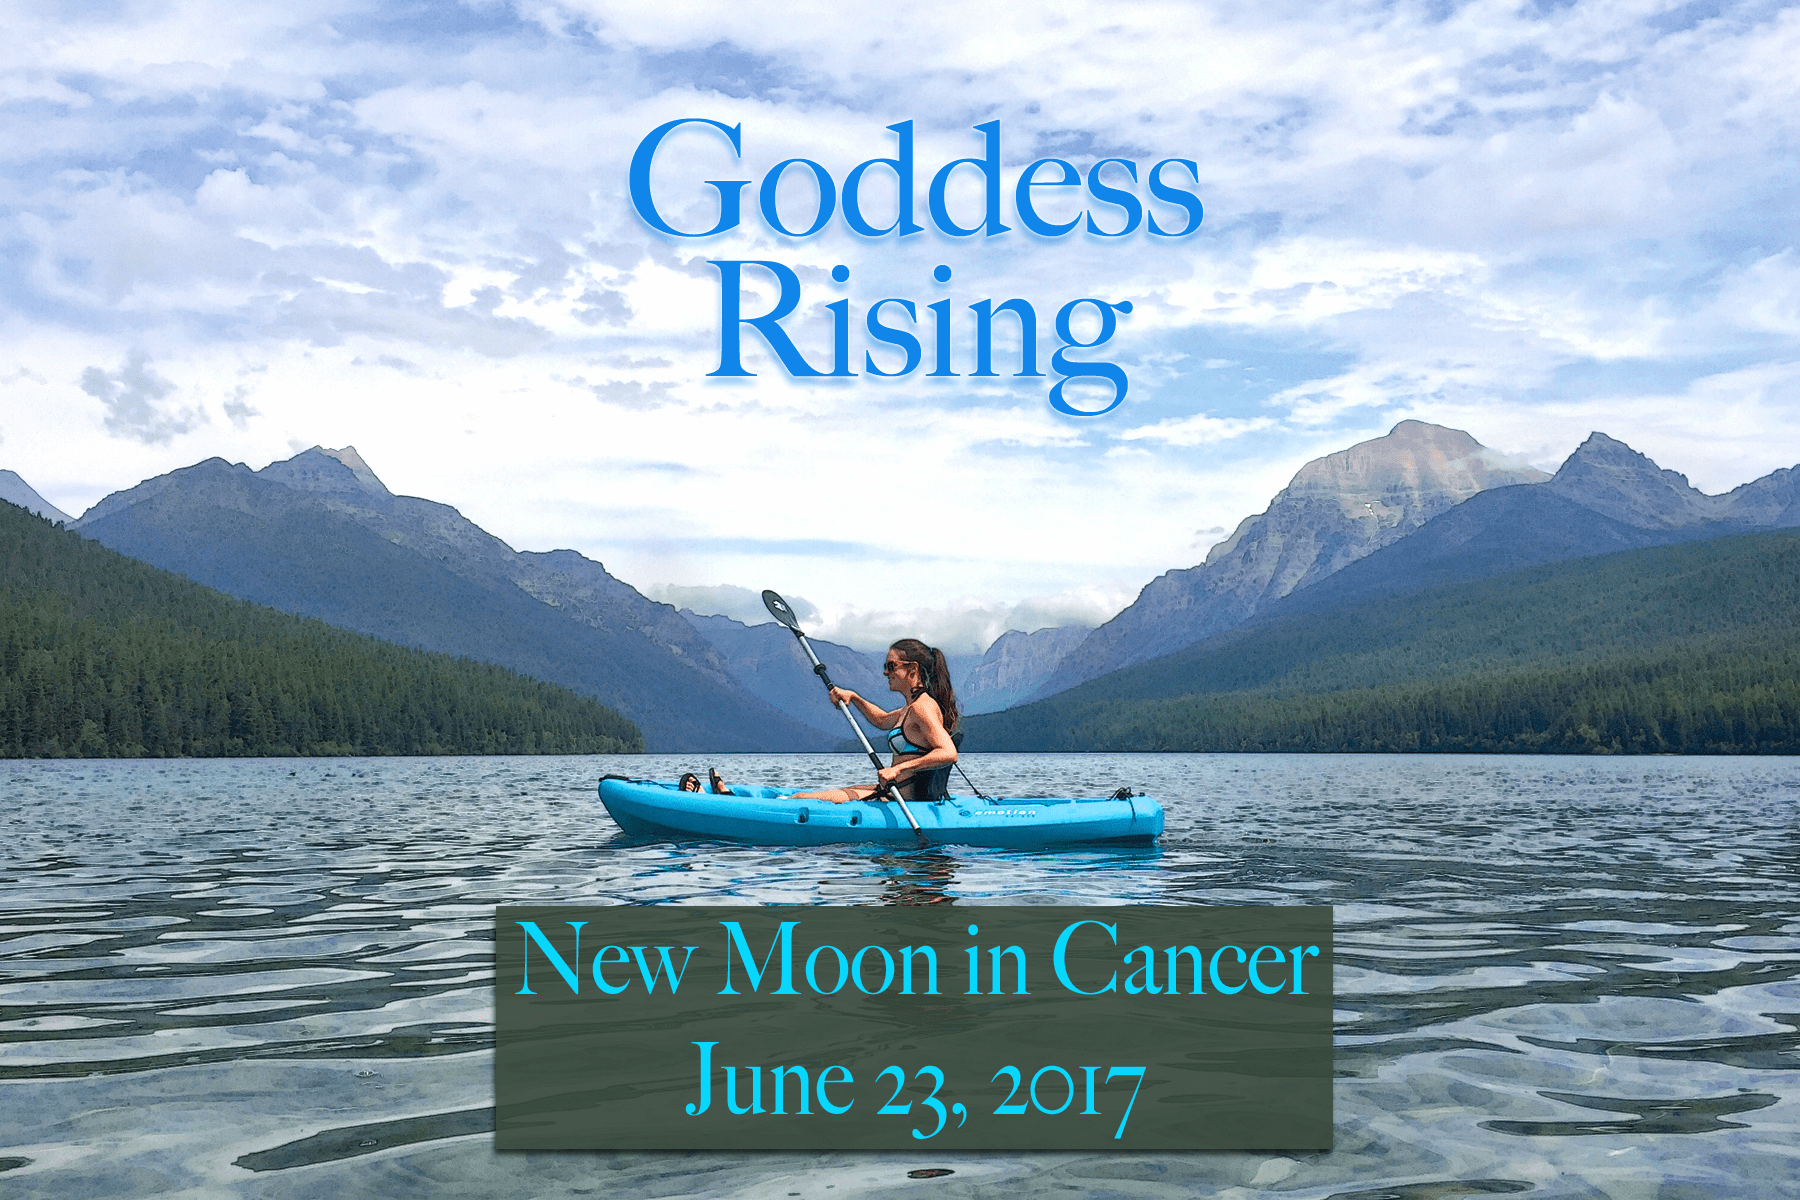 New Moon in Cancer: Goddess Rising